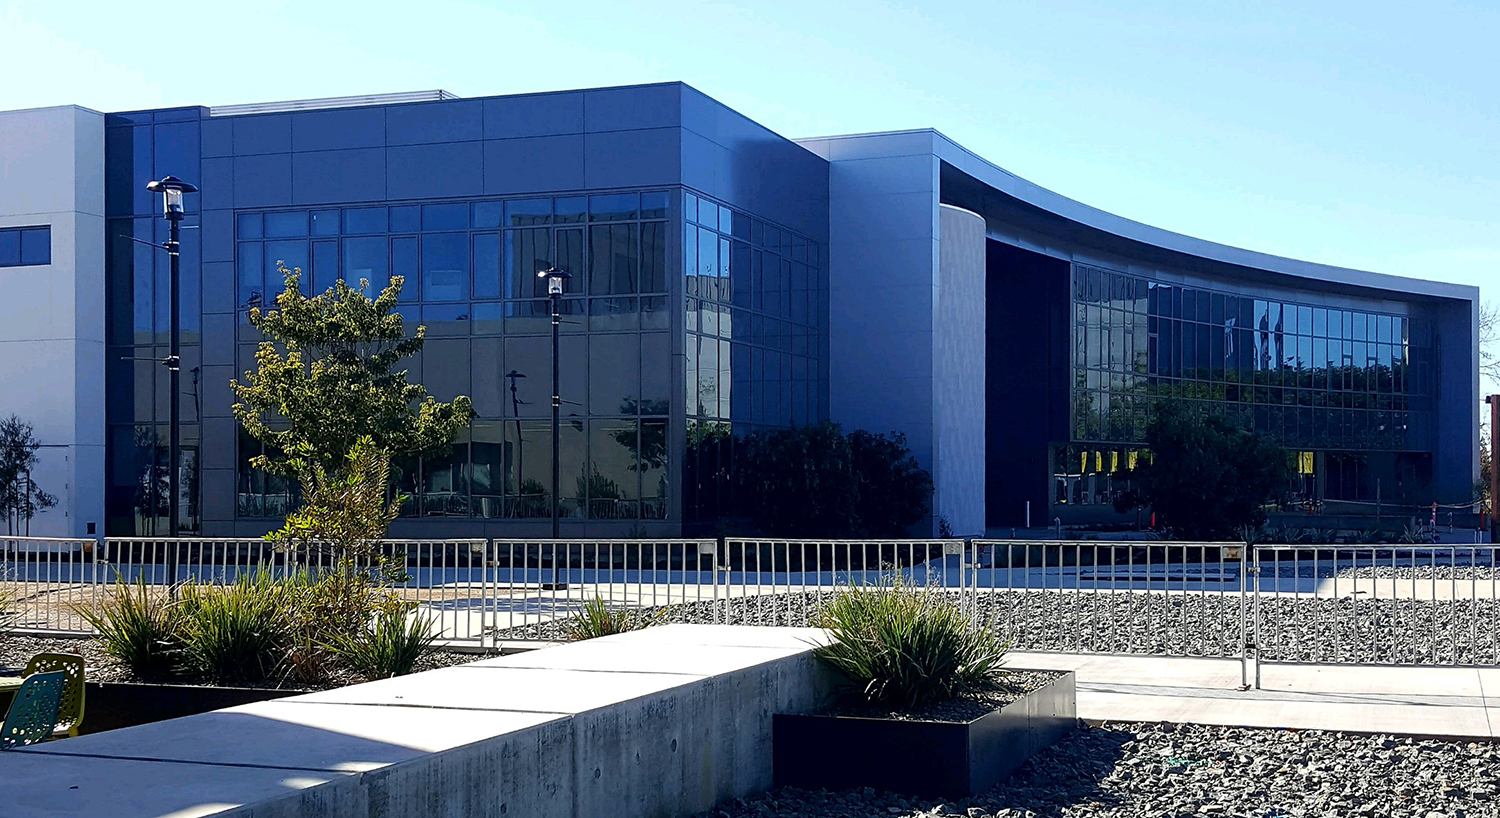 Mesa College's Center for Business and Technology